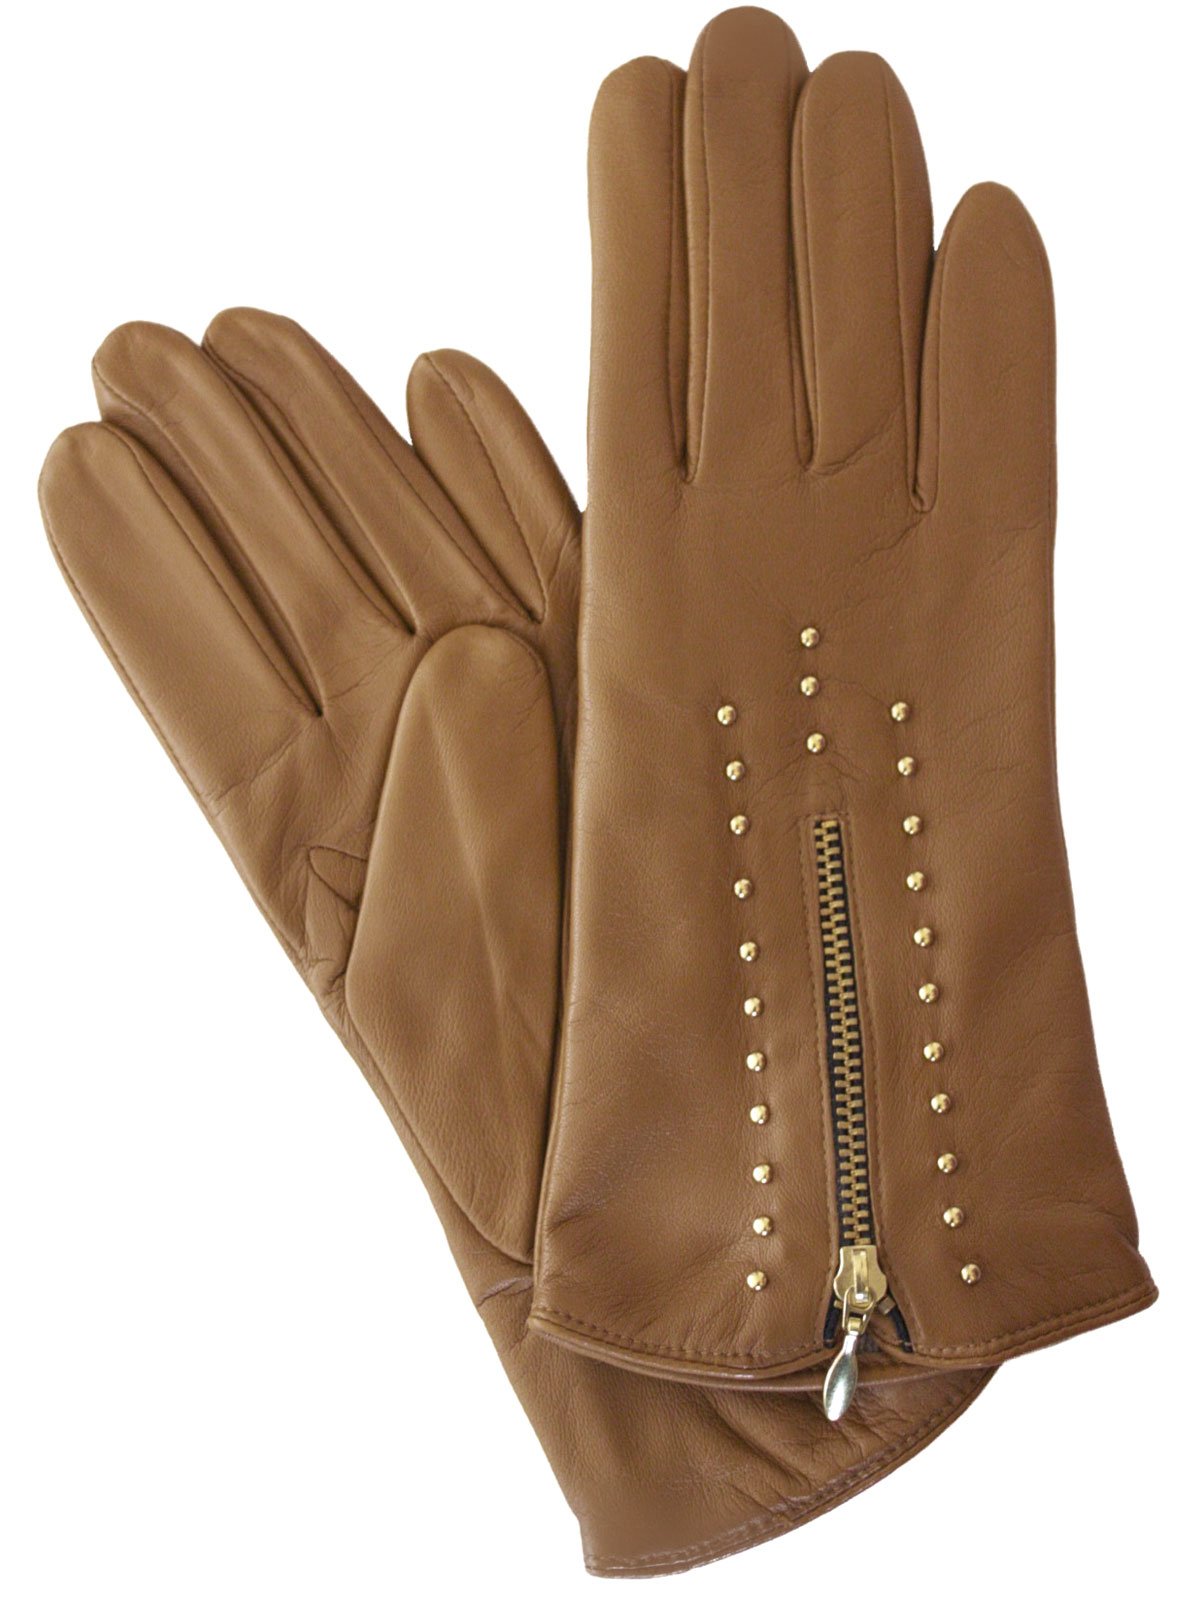 Find Women's Leather Motorcycle Gloves at J&P Cycles, your source for aftermarket motorcycle parts and accessories.